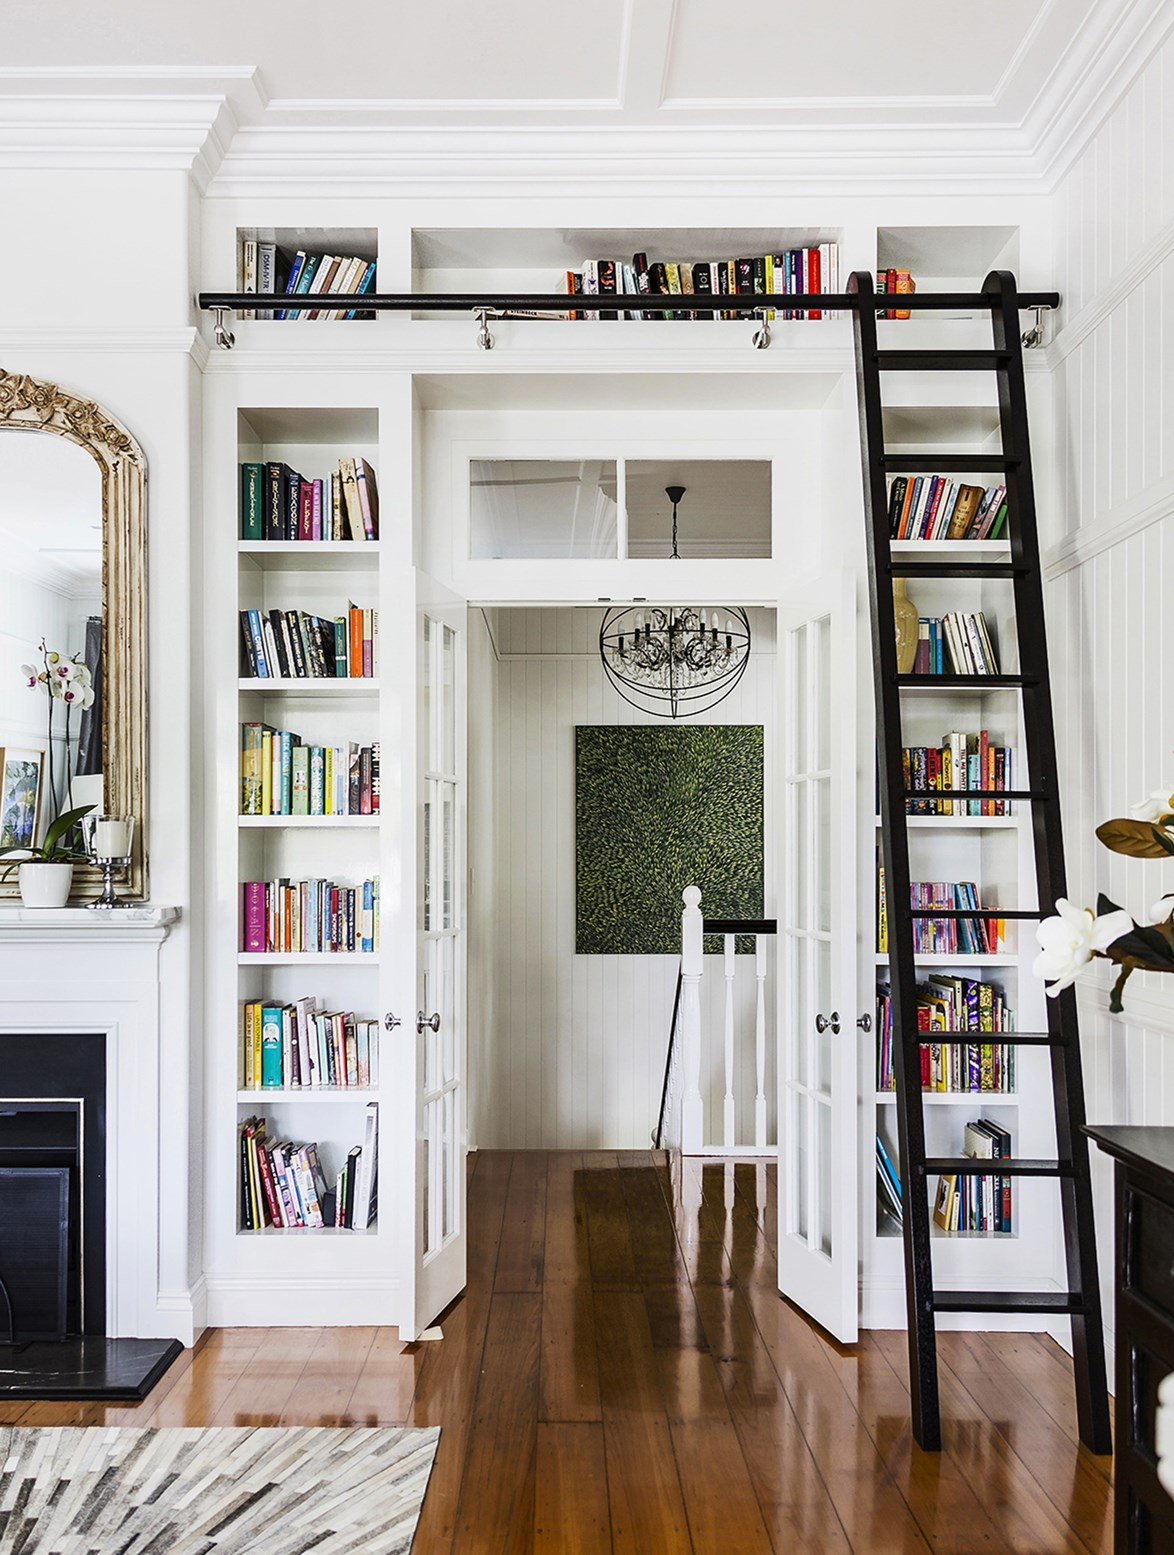 A ladder is practical and decorative addition in this home library.